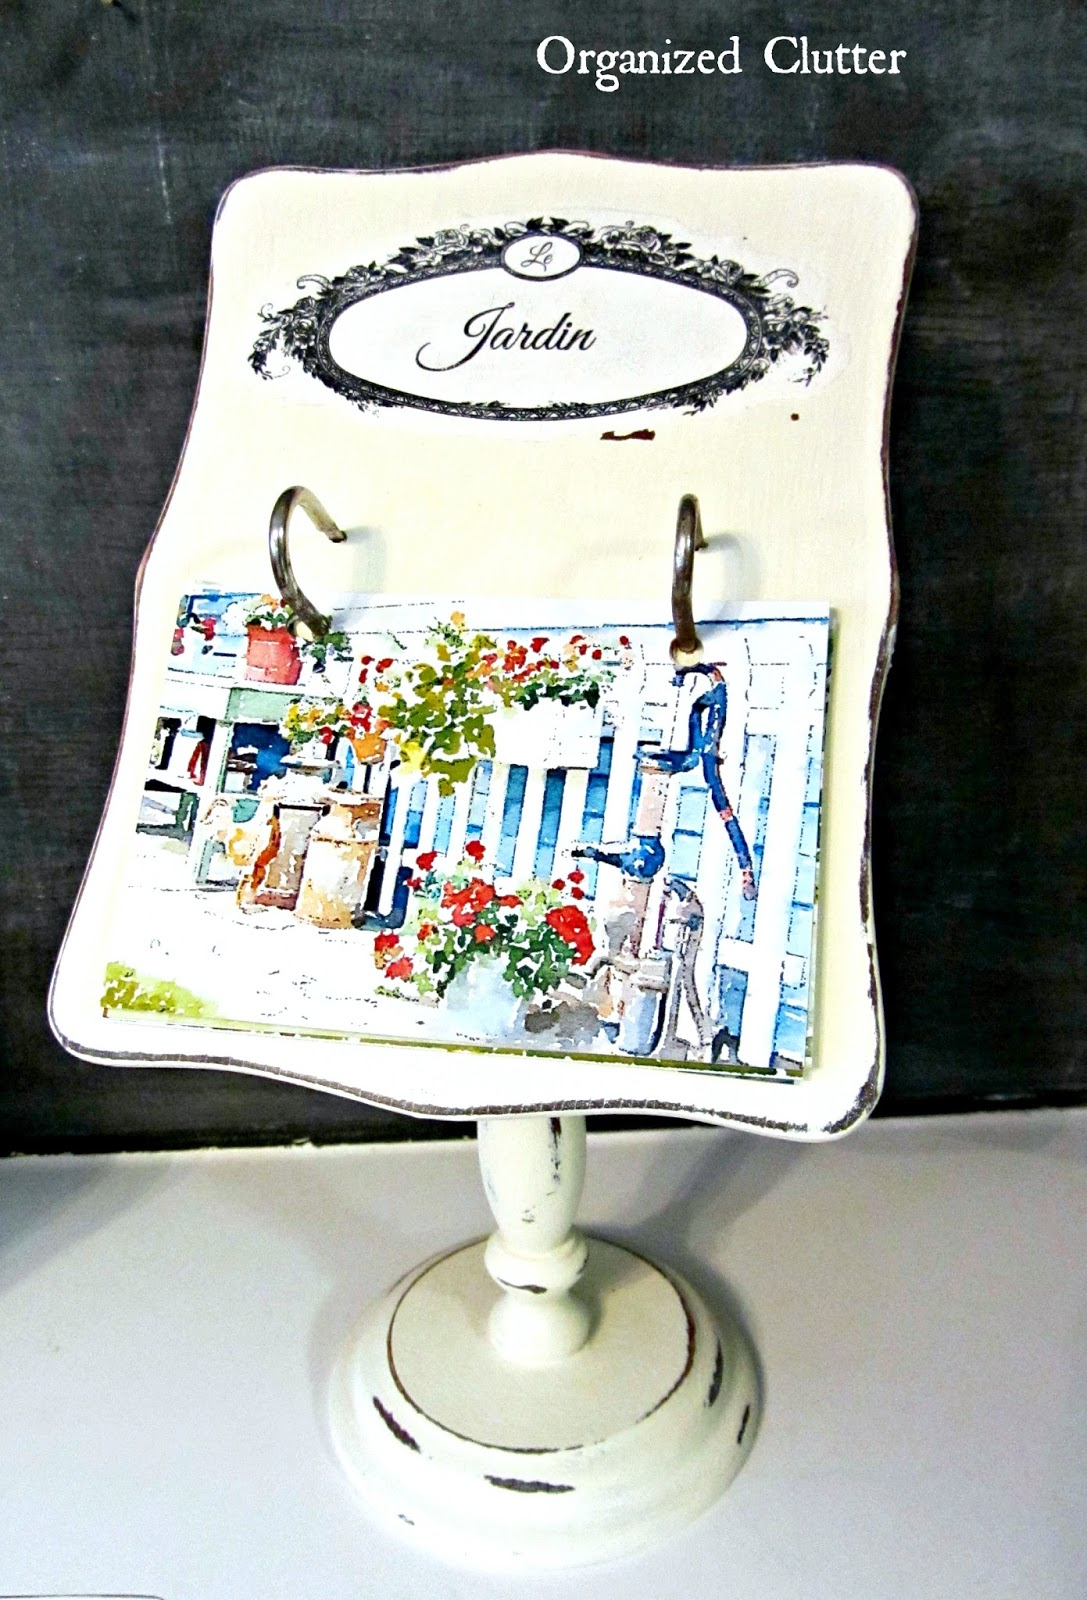 Recipe Card Garden Photo Holder www.organizedclutterqueen.blogspot.com